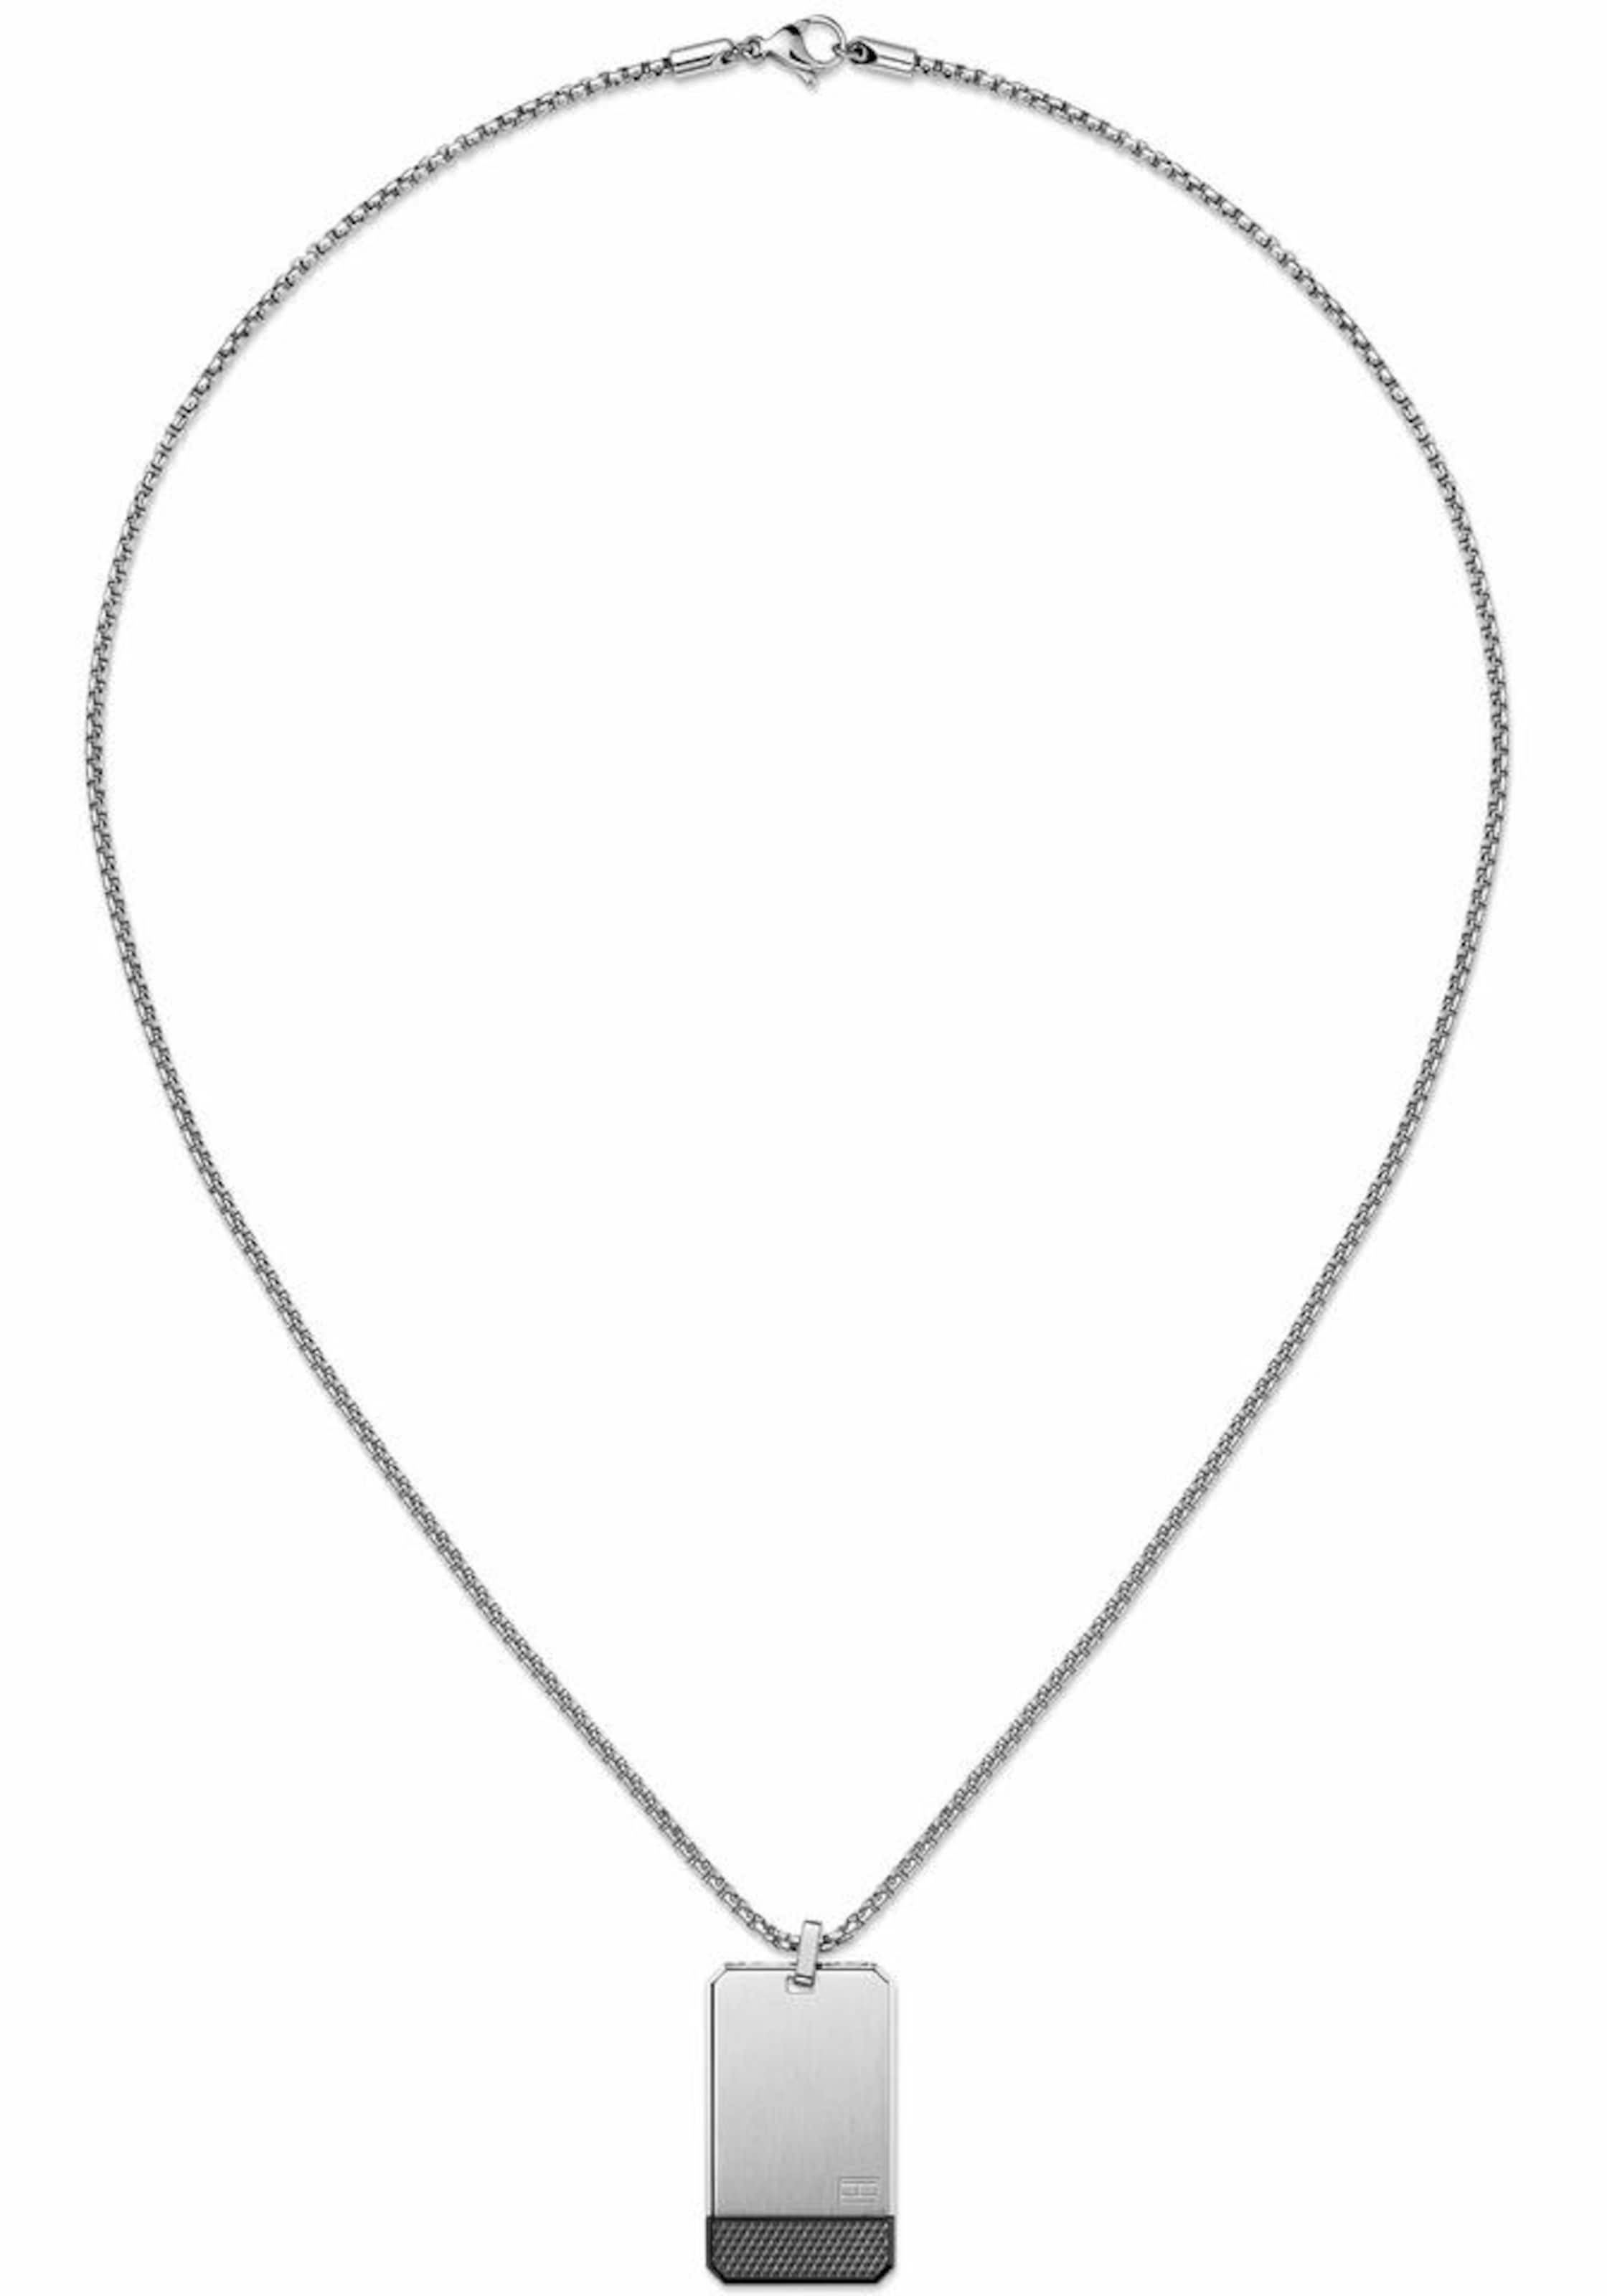 TOMMY HILFIGER Kette mit Anhänger 'Casual Core, 2701016'